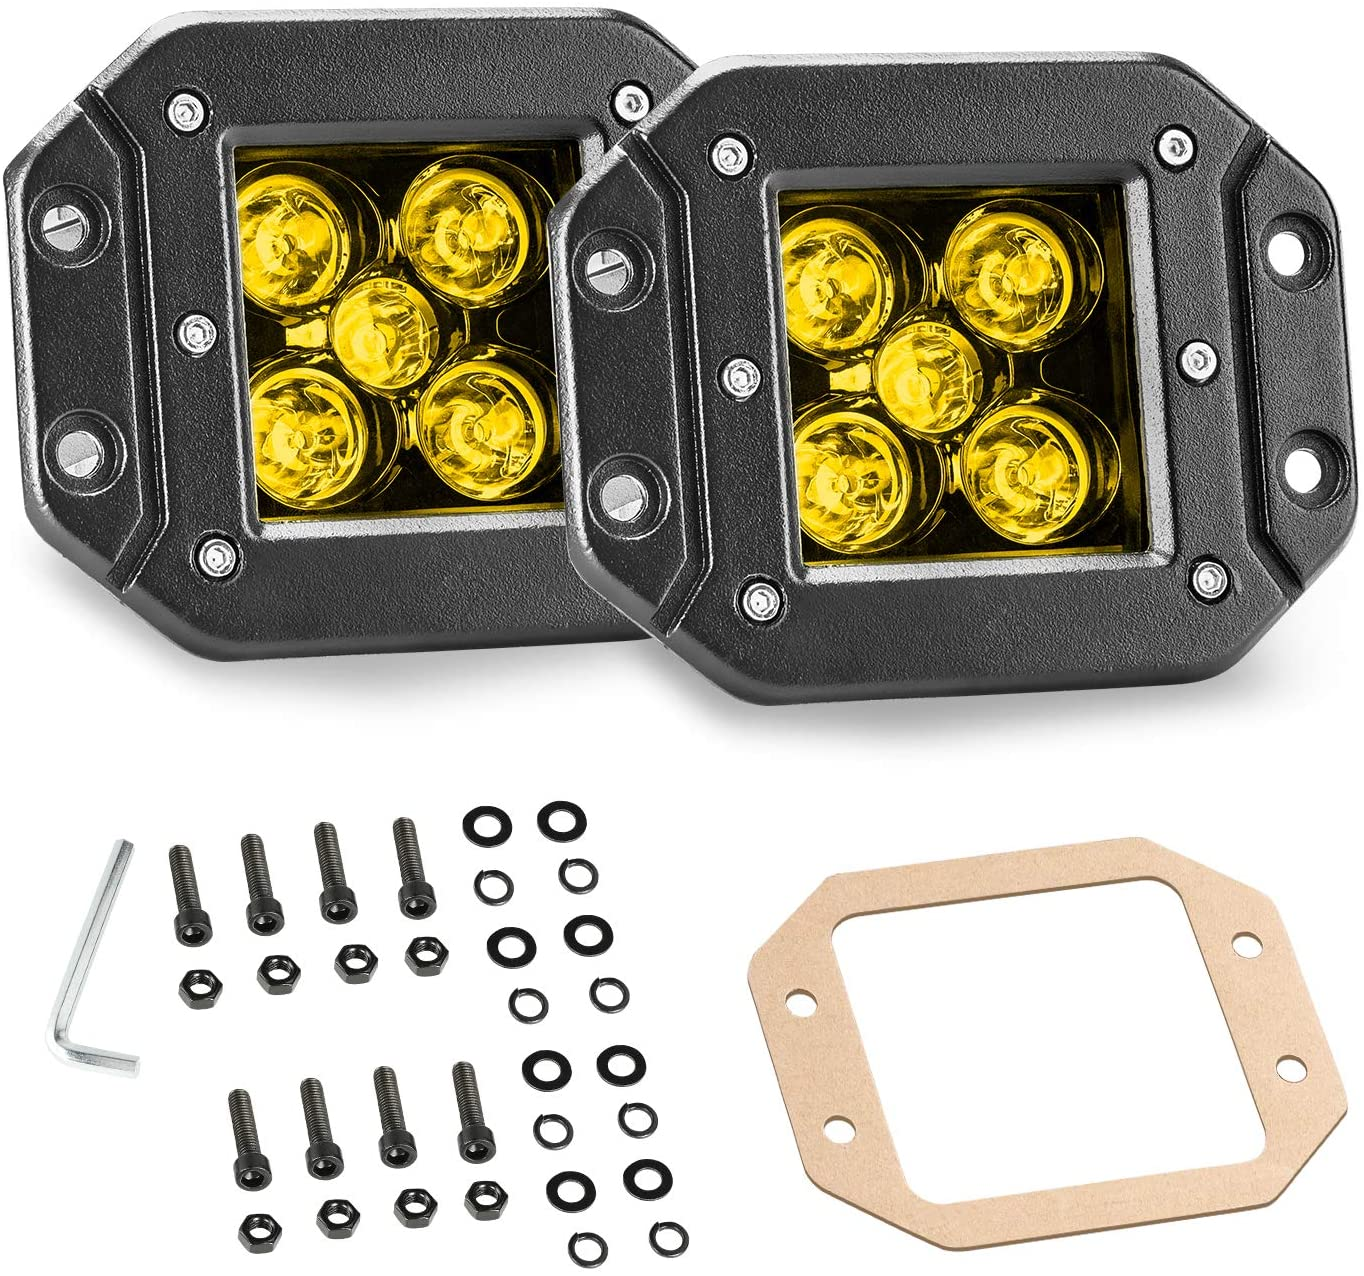 YCHOW-TECH Flush Mount Light Pods, 2Pcs 5 Inch 100W Amber LED Fog Lights LED Cubes Spot Beam Yellow Flush LED Work Light Off Road LED Driving Light for Truck SUV ATV UTV Marine